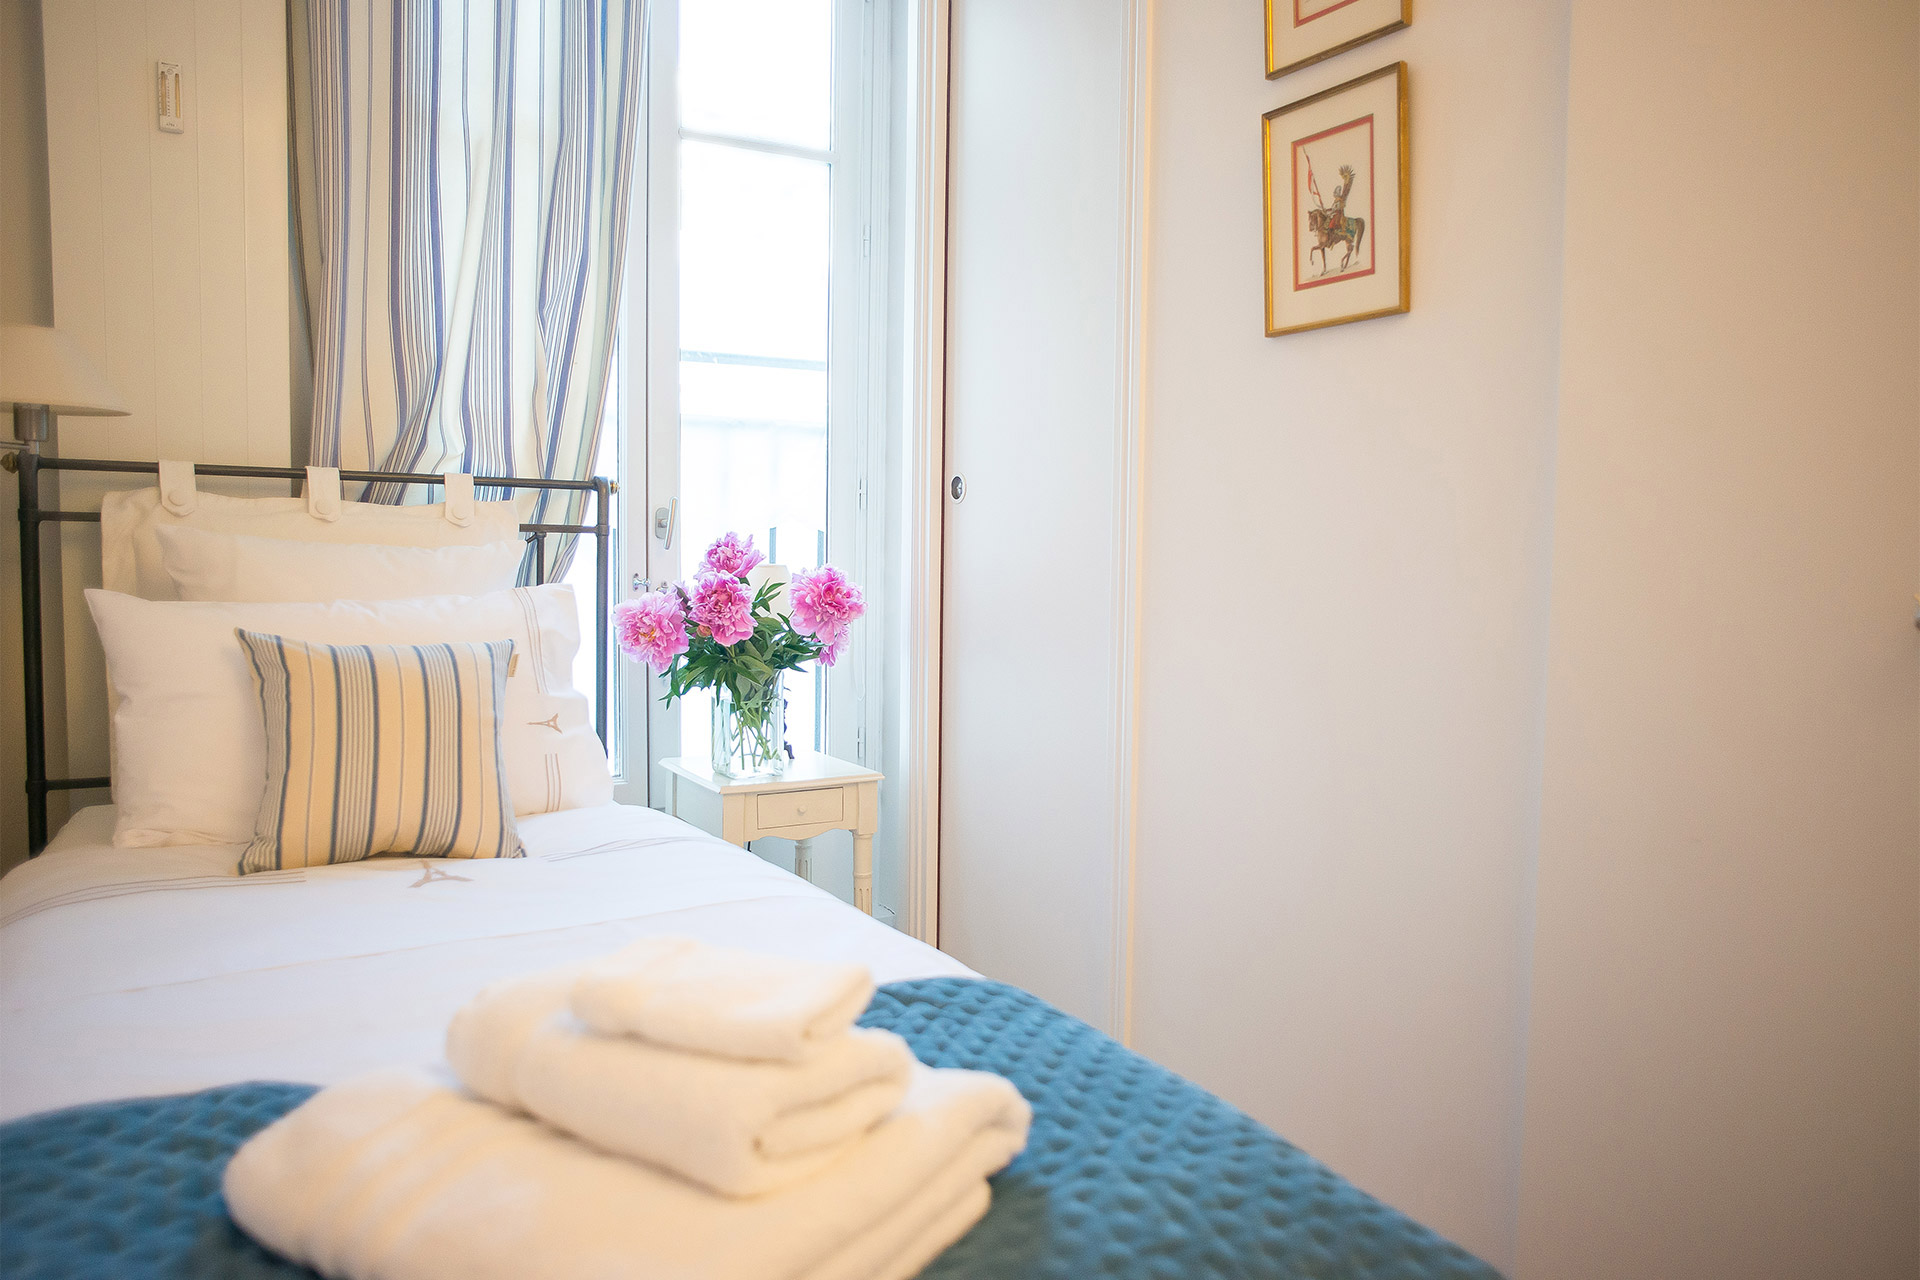 Private single bedroom with en suite bathroom in the Bergerac vacation rental offered by Paris Perfect